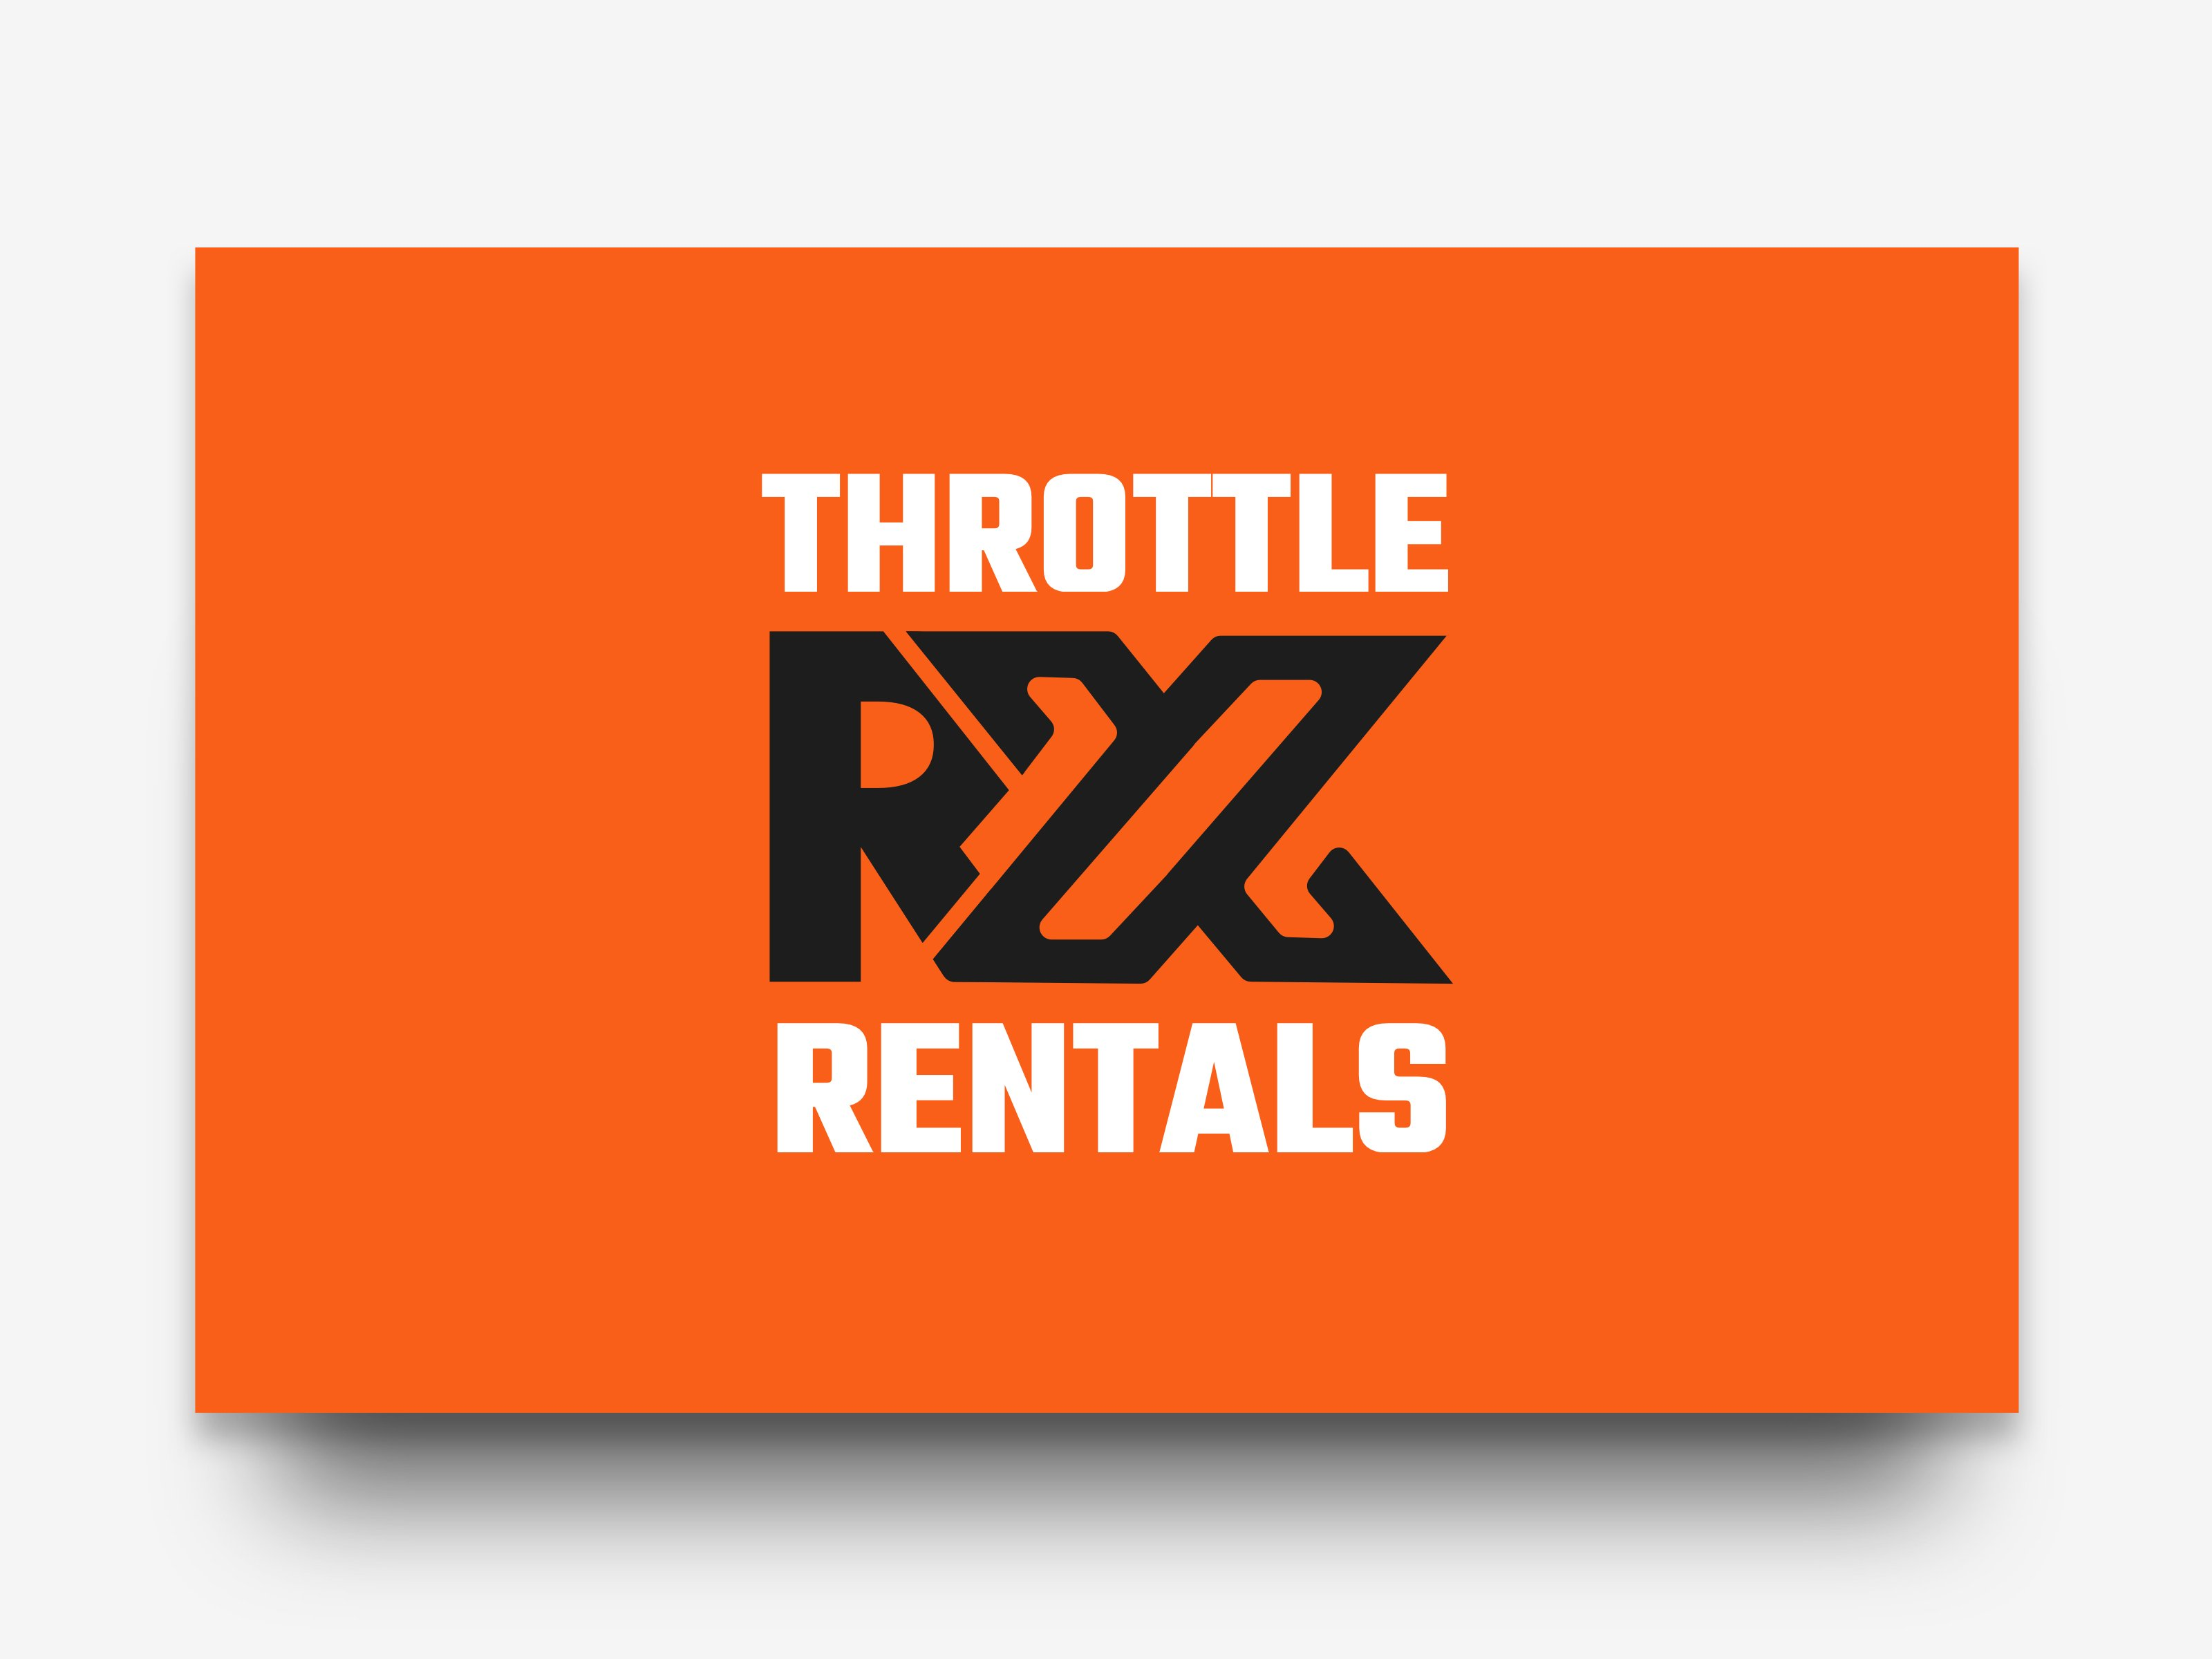 Throttle RX Rentals Logo